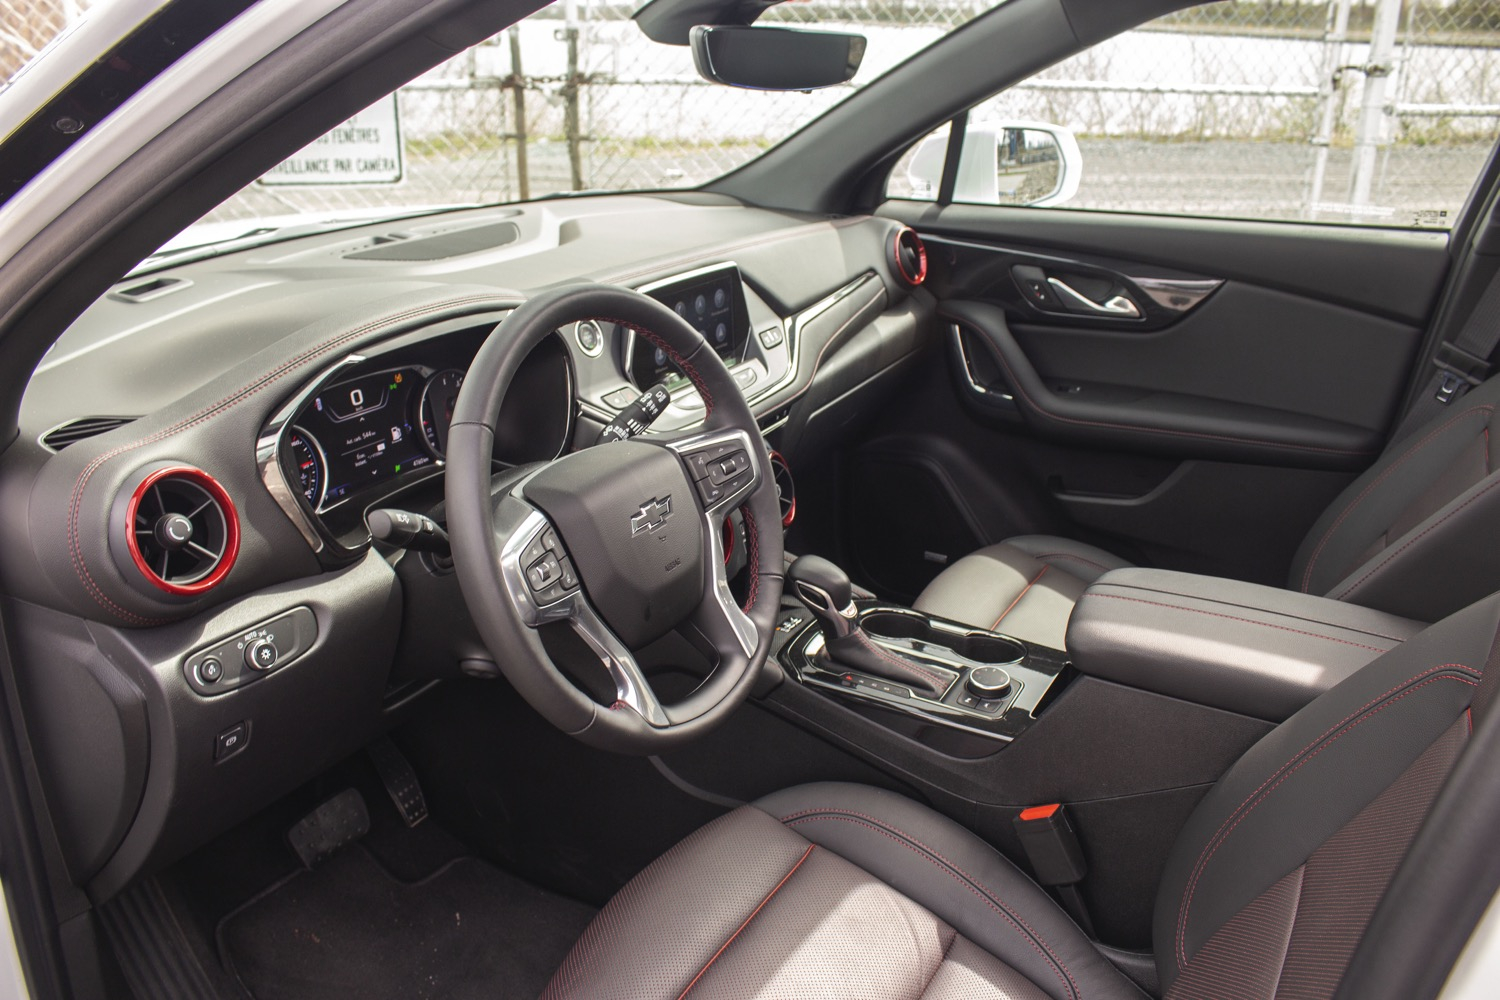 2021 Blazer Loses Standard Leather-Wrapped Steering Wheel New 2022 Buick Encore Seat Covers, Safety Features, Towing Capacity